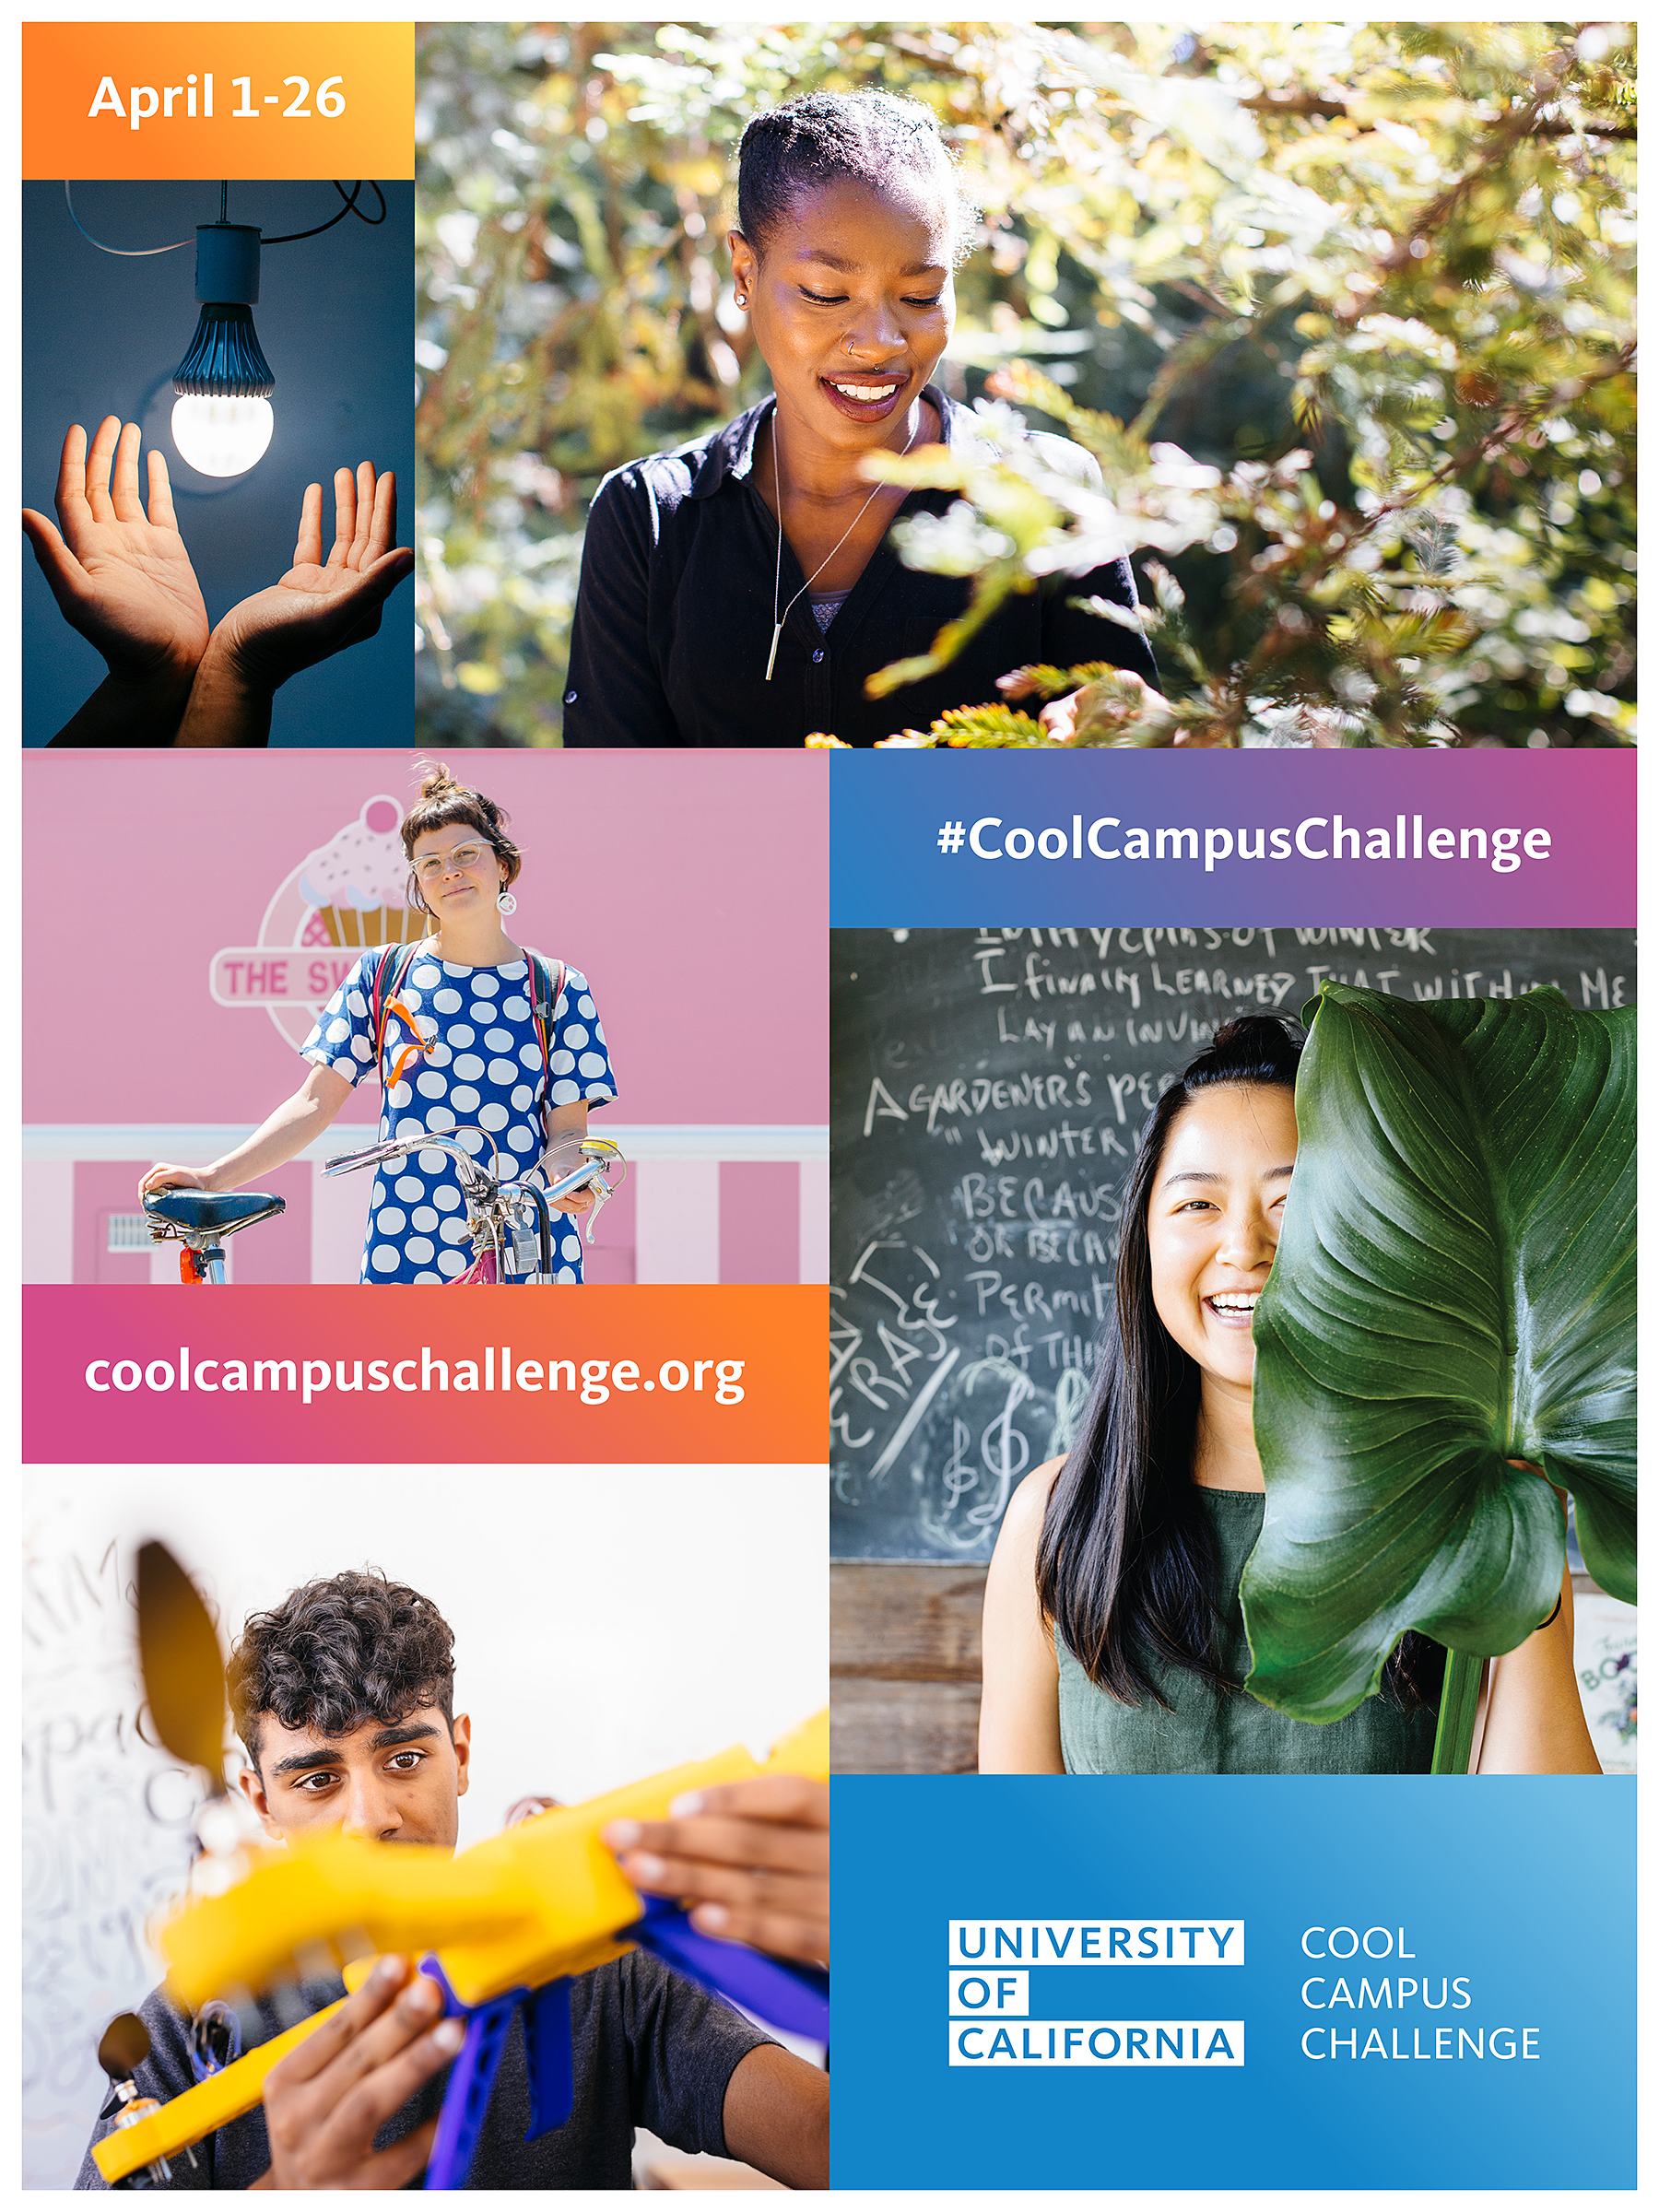 Cool Campus Challenge 2019 poster